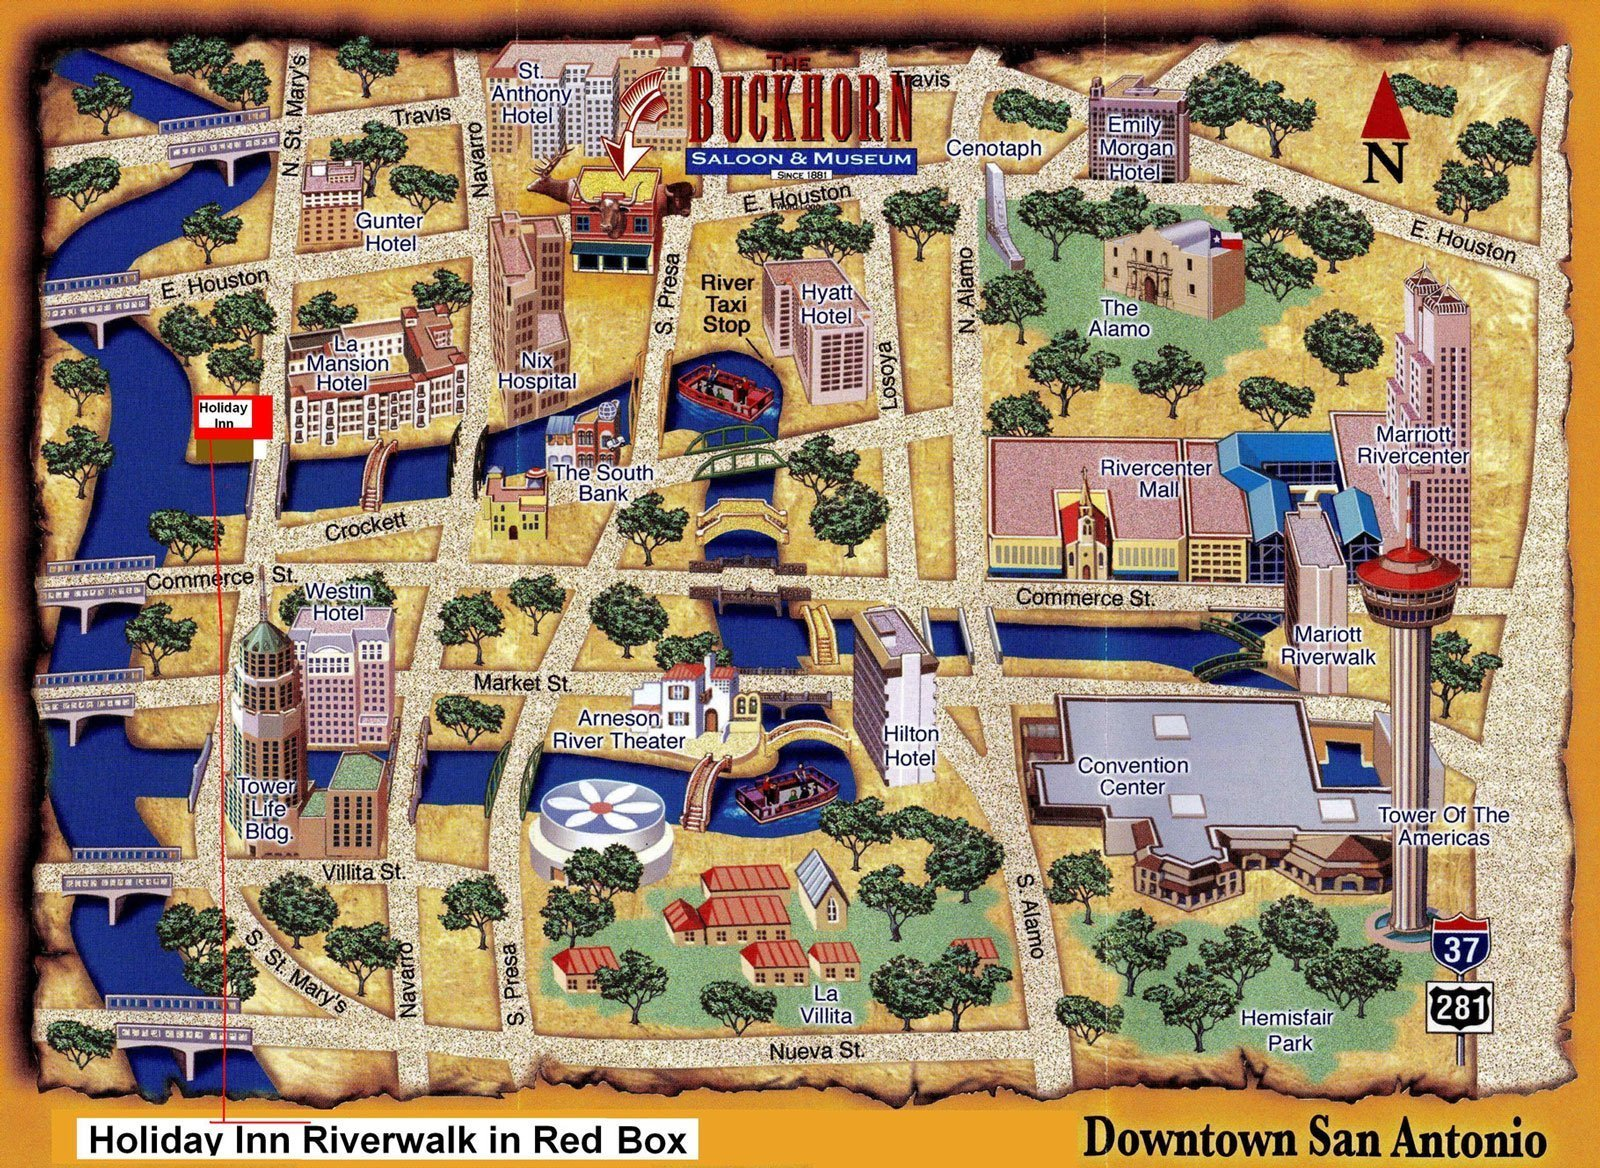 Map of Downtown San Antonio, Texas